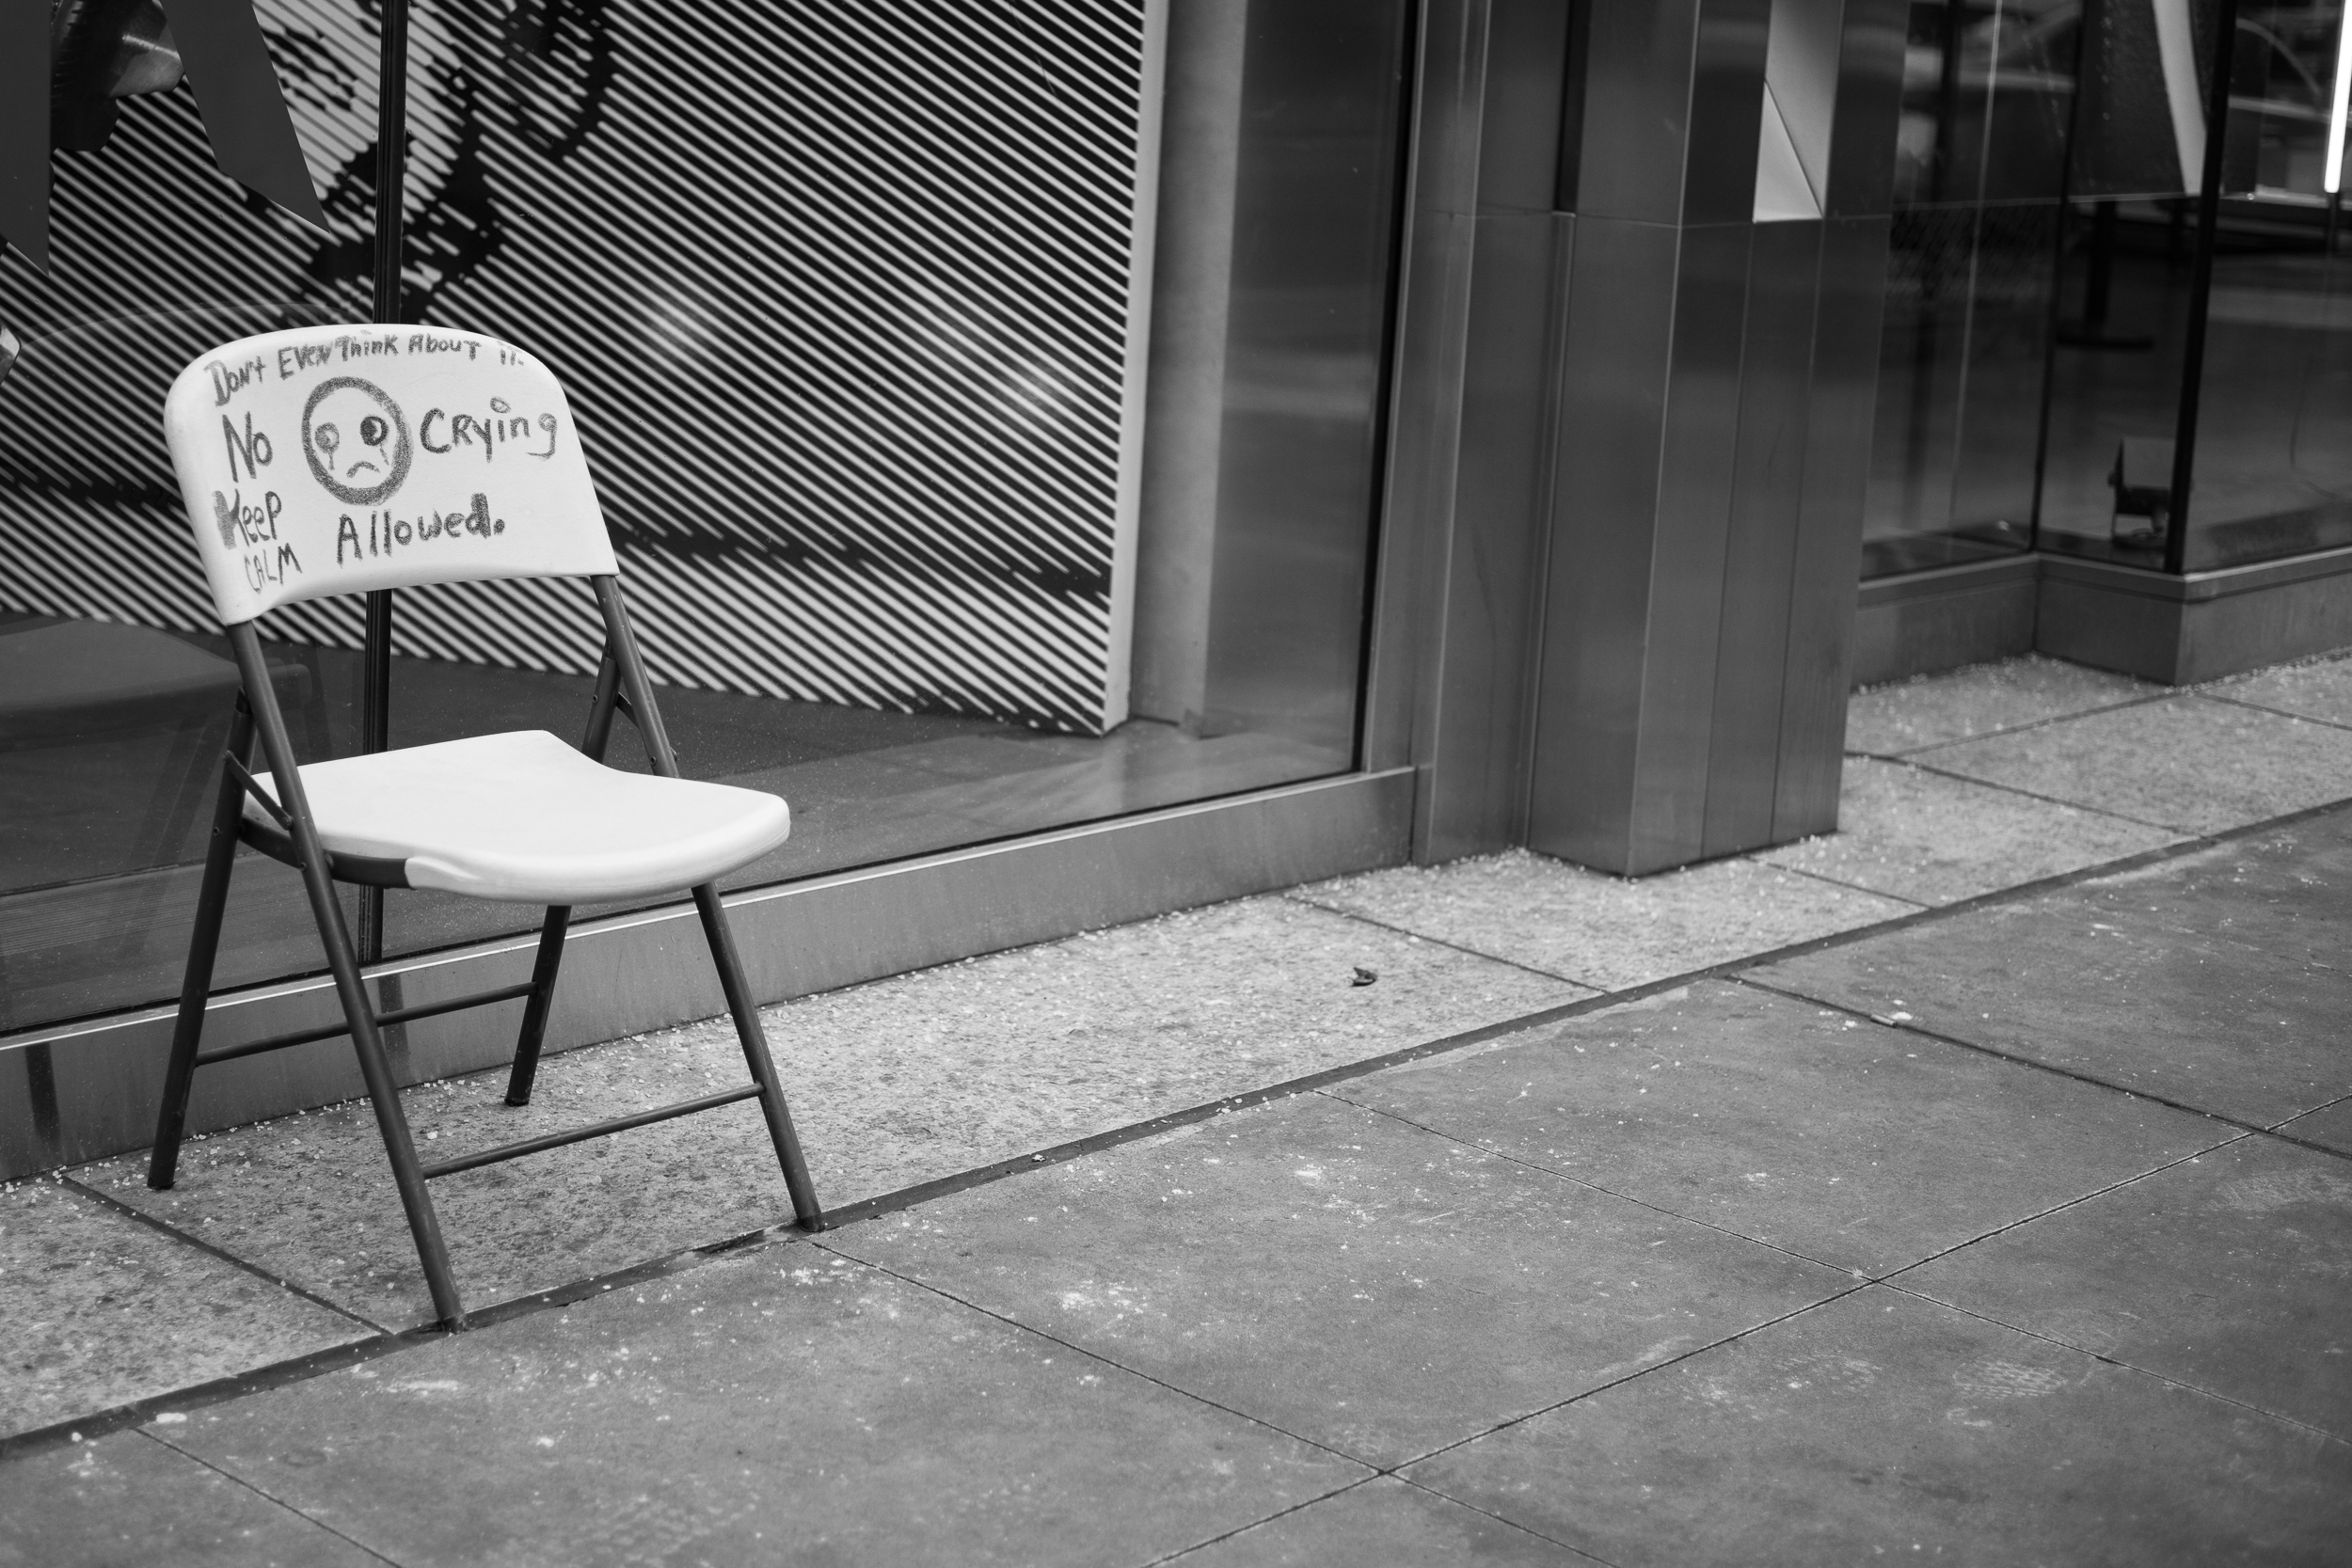 """The Message. A simple chair might not have had the sparkle to catch my eye, but this chair, with the """"No Crying Allowed"""" message caught my eye. Leica M10 with 90mm Summicron f/2."""